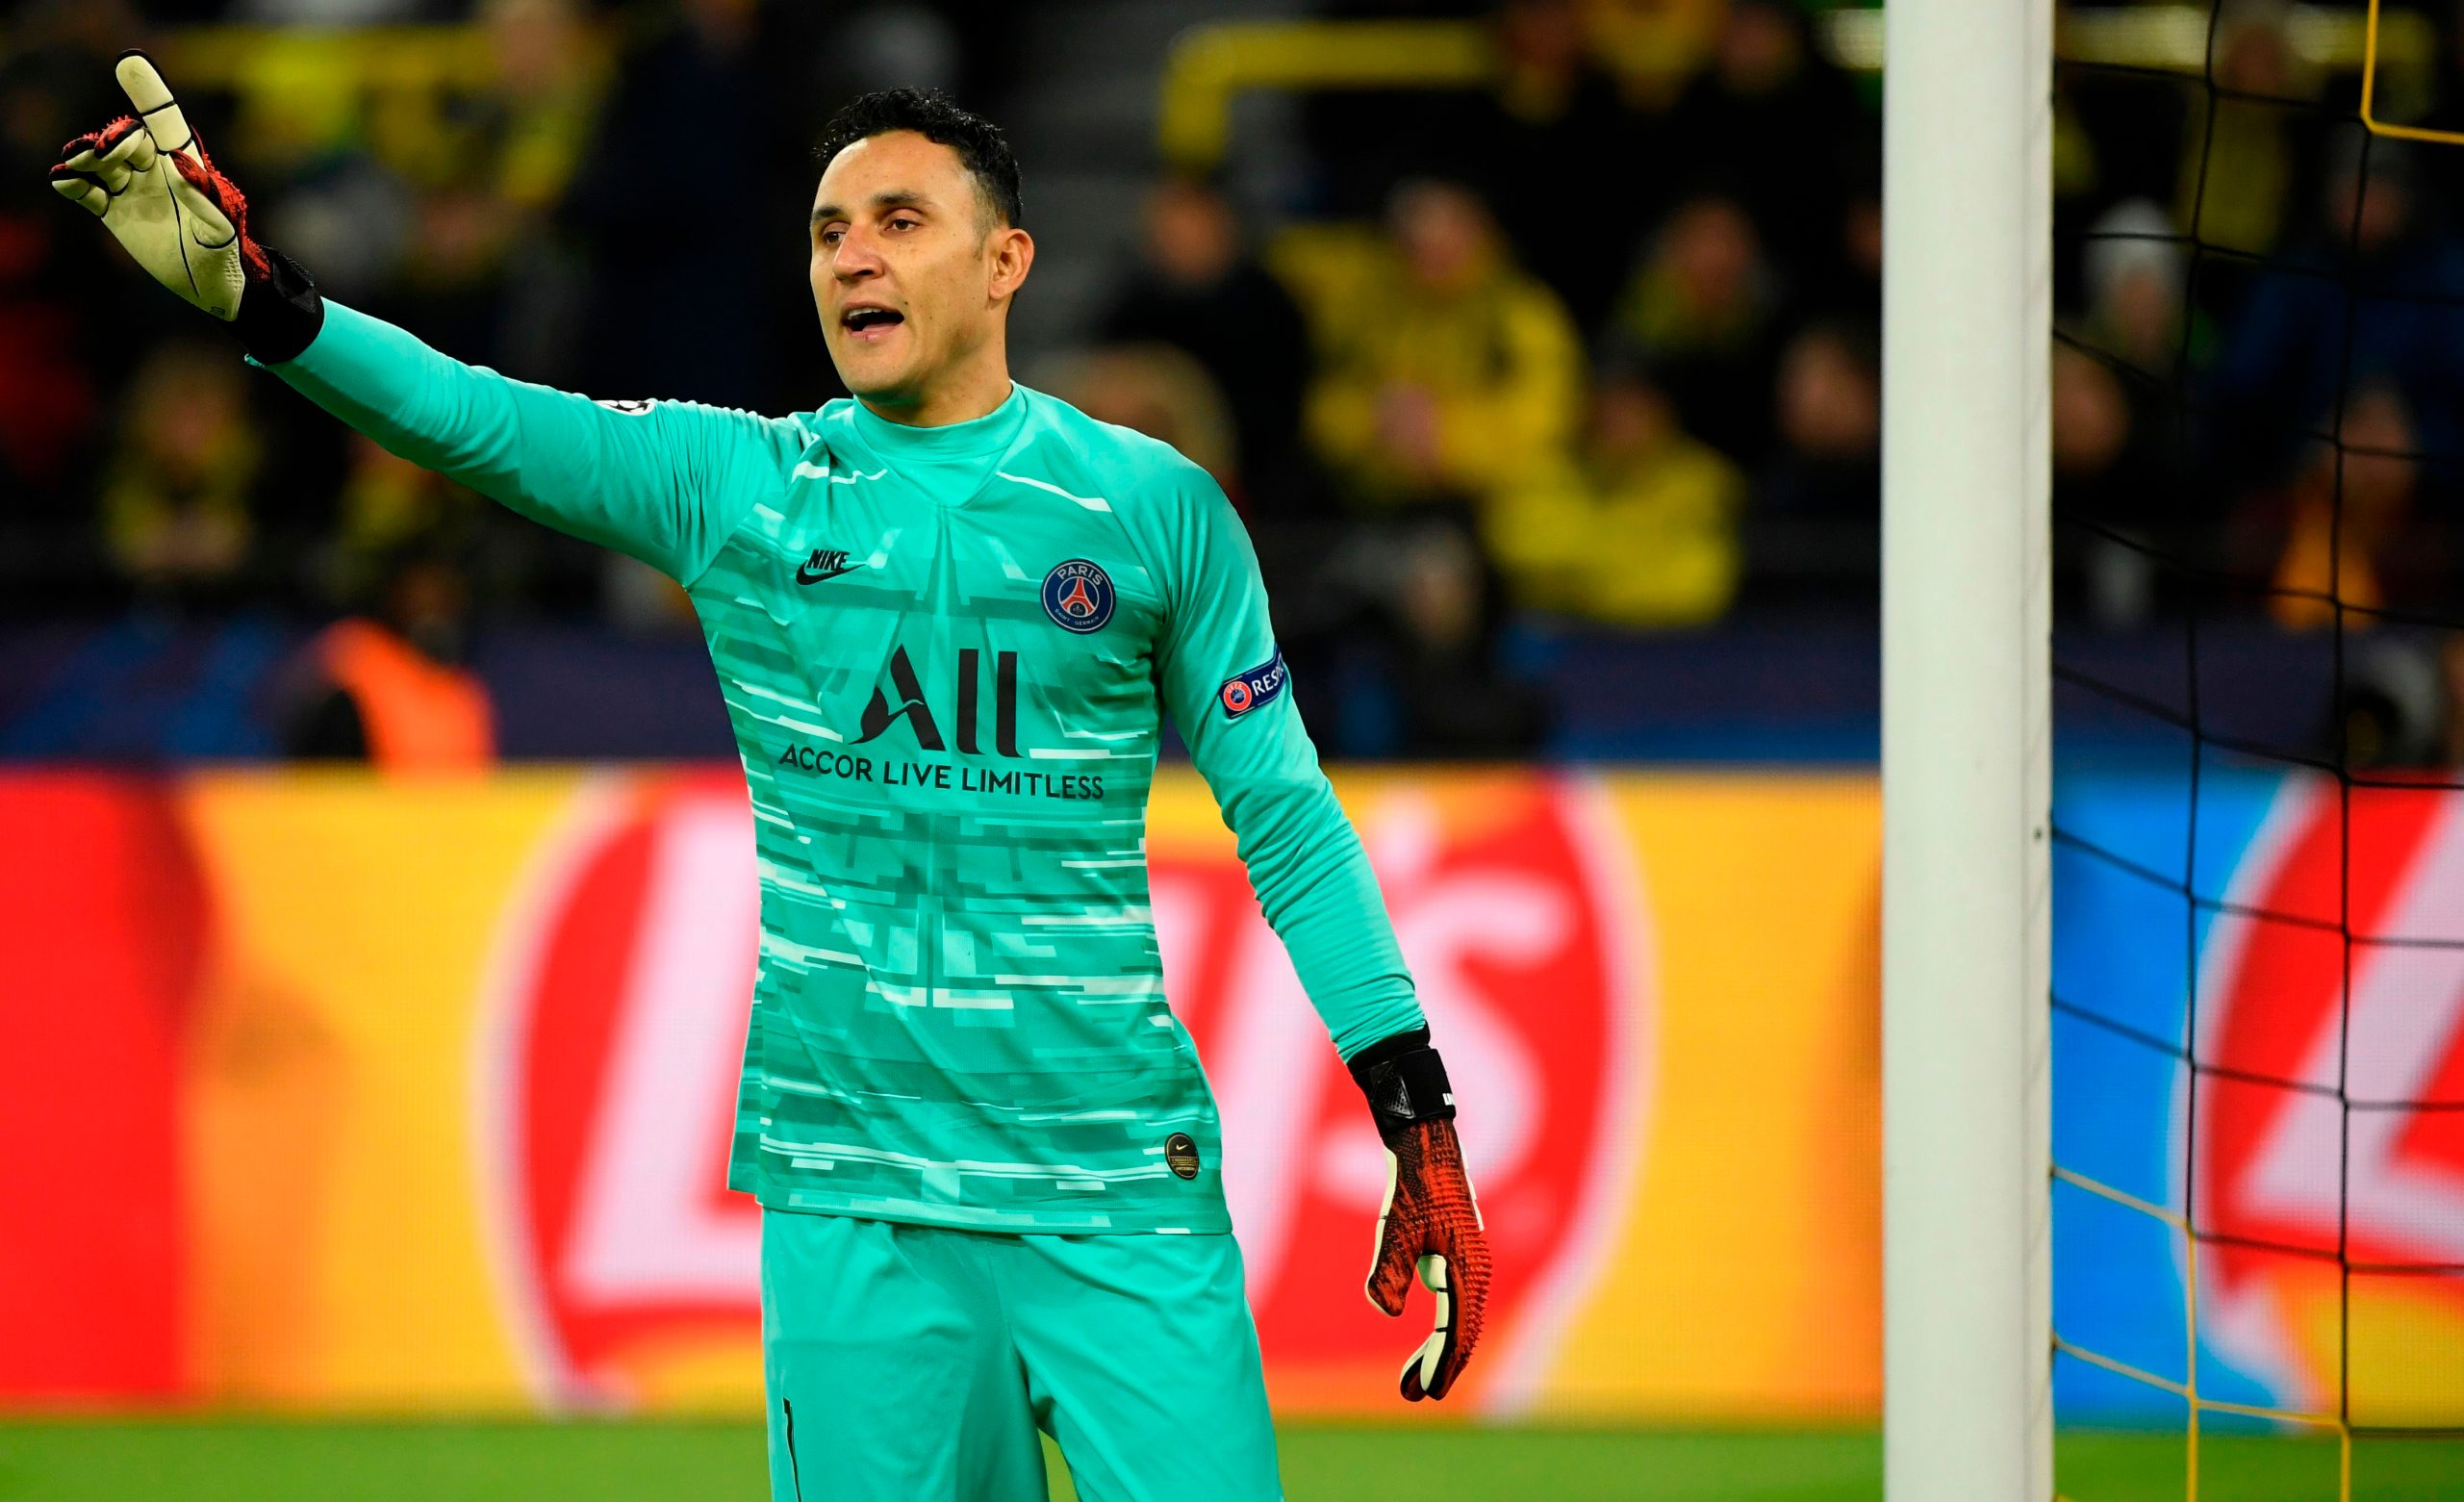 Paris Saint-Germain's Costa Rican goalkeeper Keylor Navas gestures during the UEFA Champions League Last 16, first-leg football match BVB Borussia Dortmund v Paris Saint-Germain (PSG) in Dortmund, western Germany, on February 18, 2020. (Photo by Ina Fassbender / AFP)